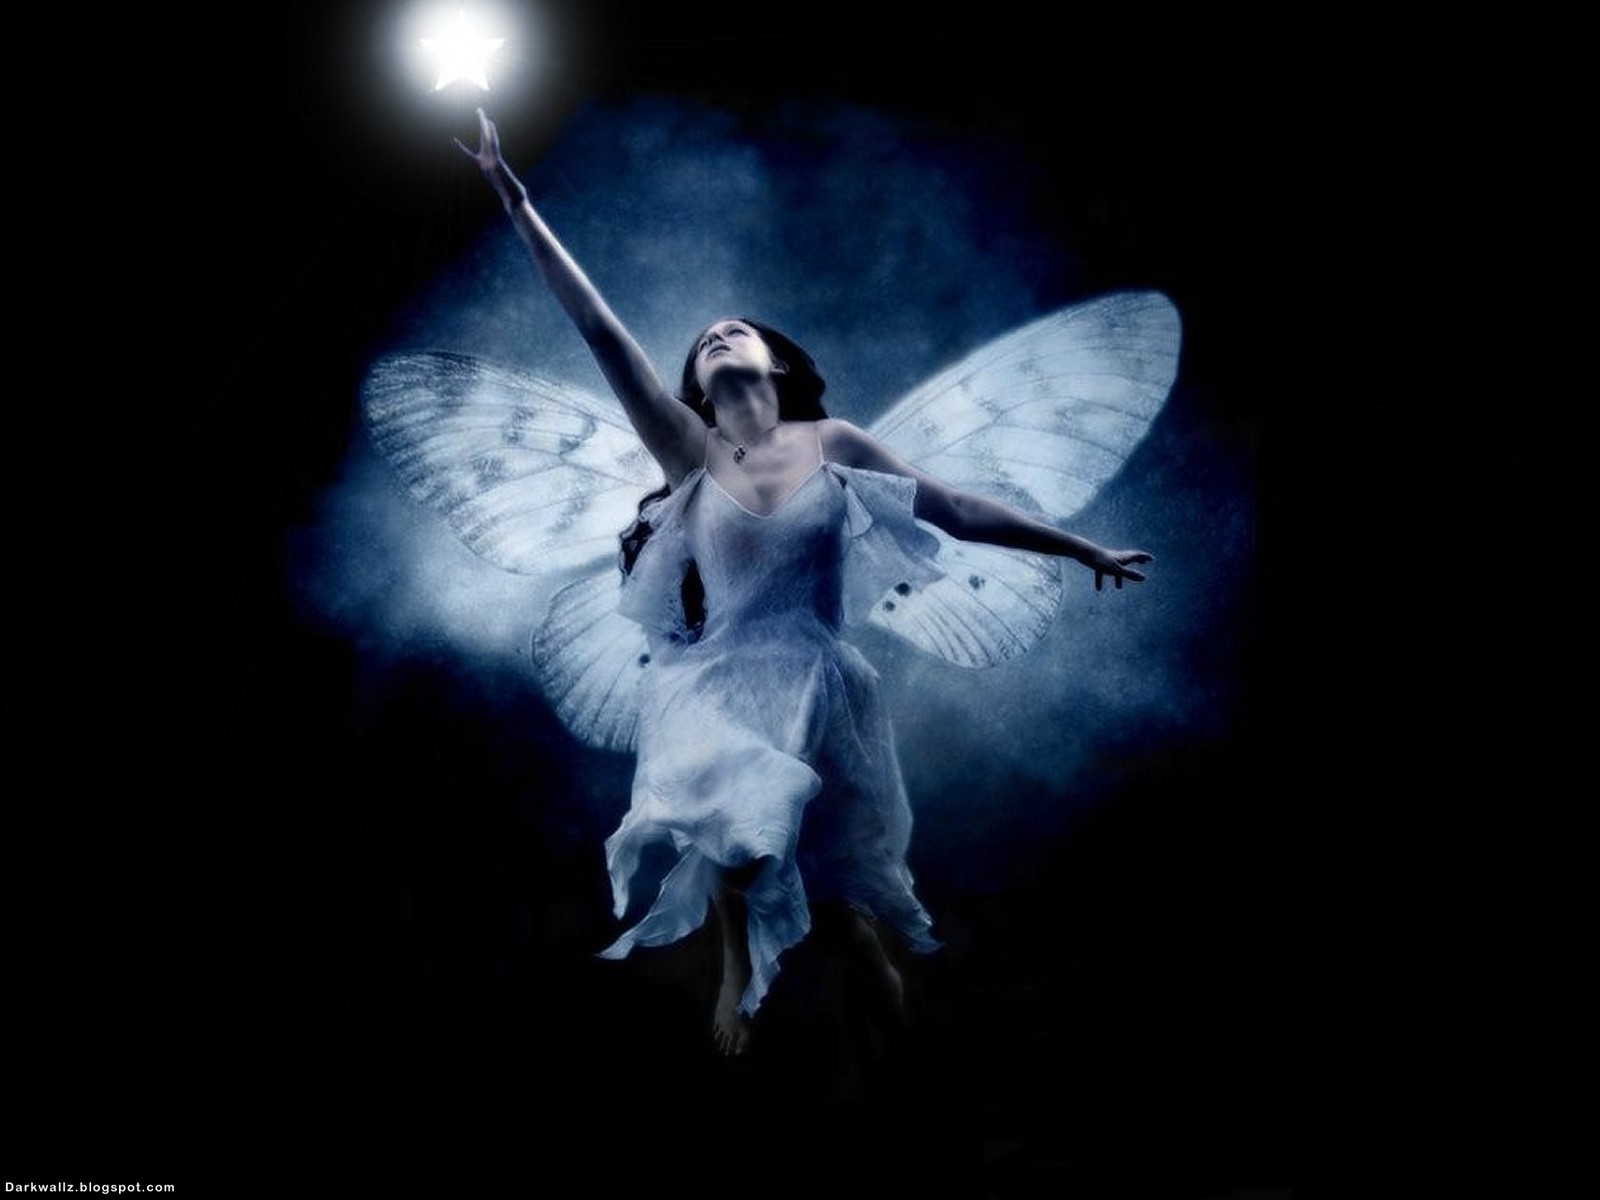 Dark Angel Wallpapers 08 Dark Wallpapers High Quality Black Gothic 1600x1200